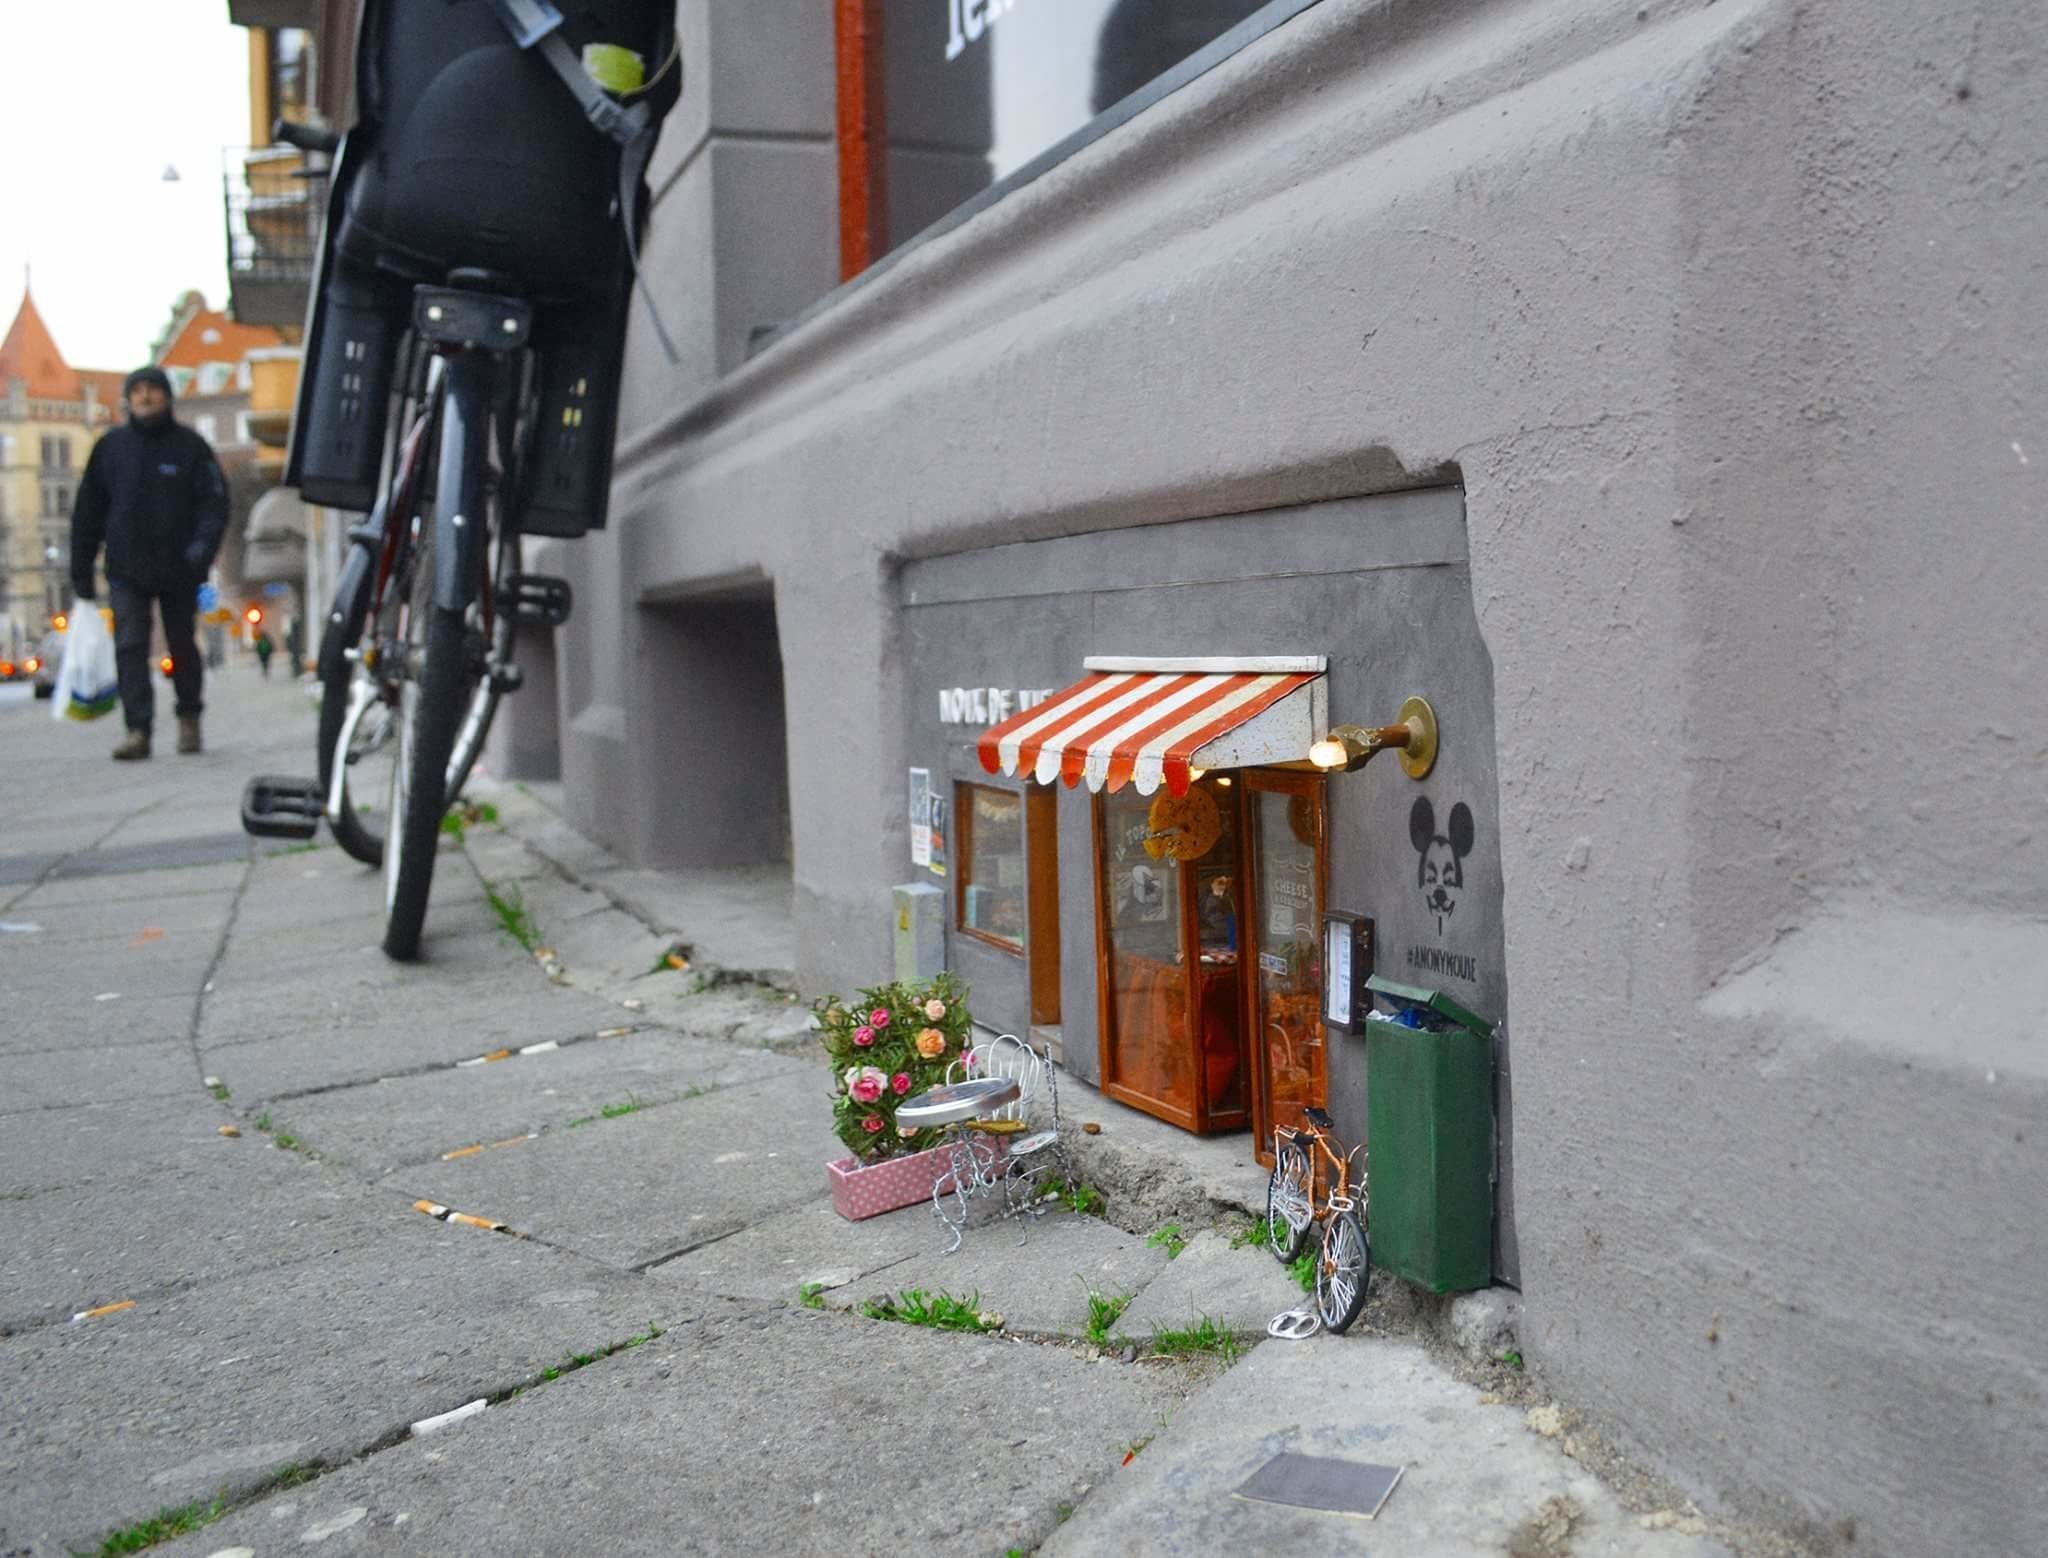 An artist in Sweden has constructed a restaurant for rodents.